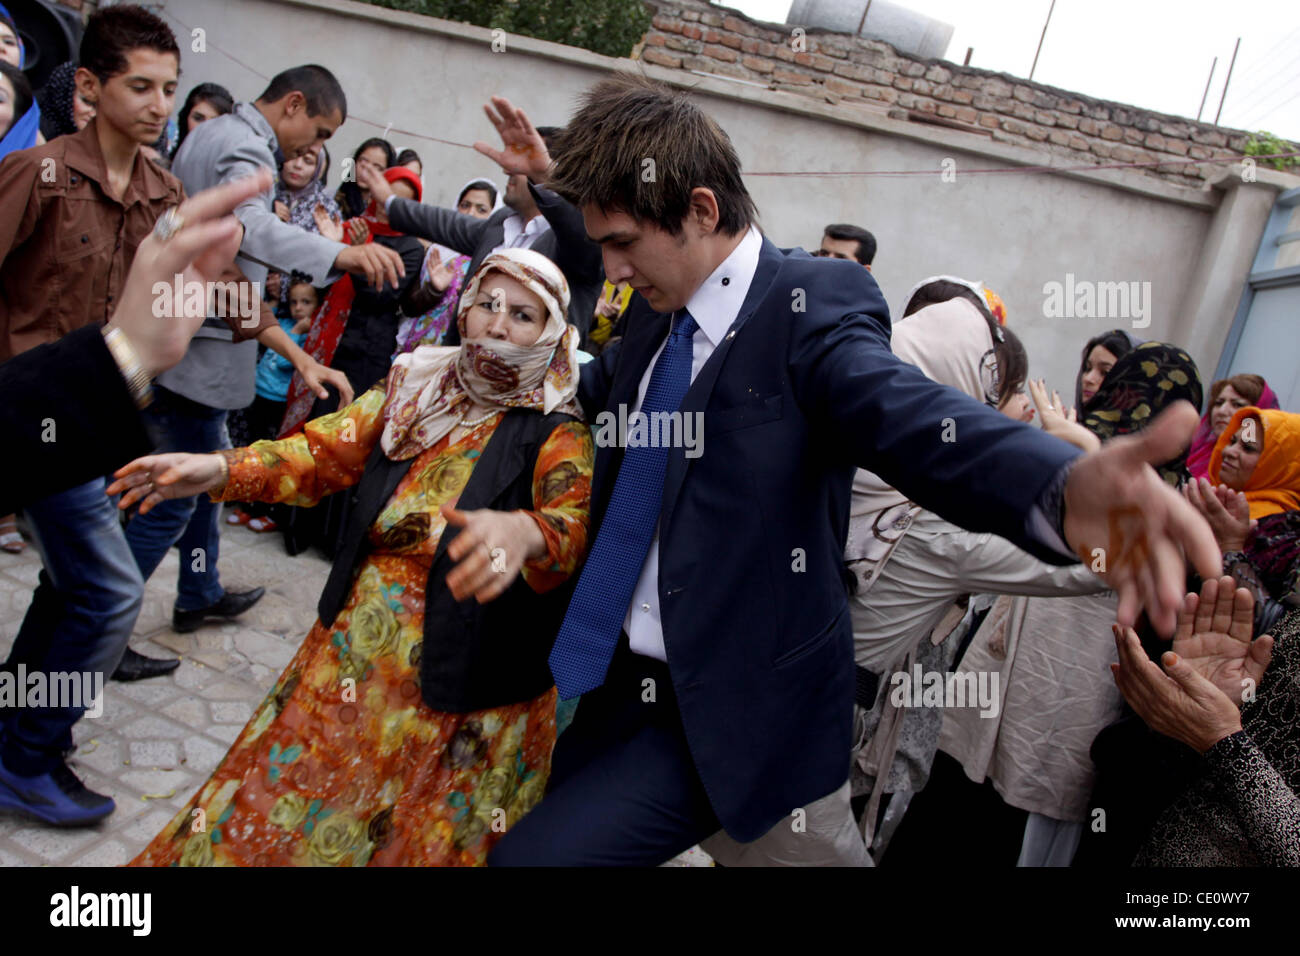 September 11, 2011: Samad (Right - 17 years old) dances with his mother Sorayya (Left - 49 years old) who has worn - Stock Image